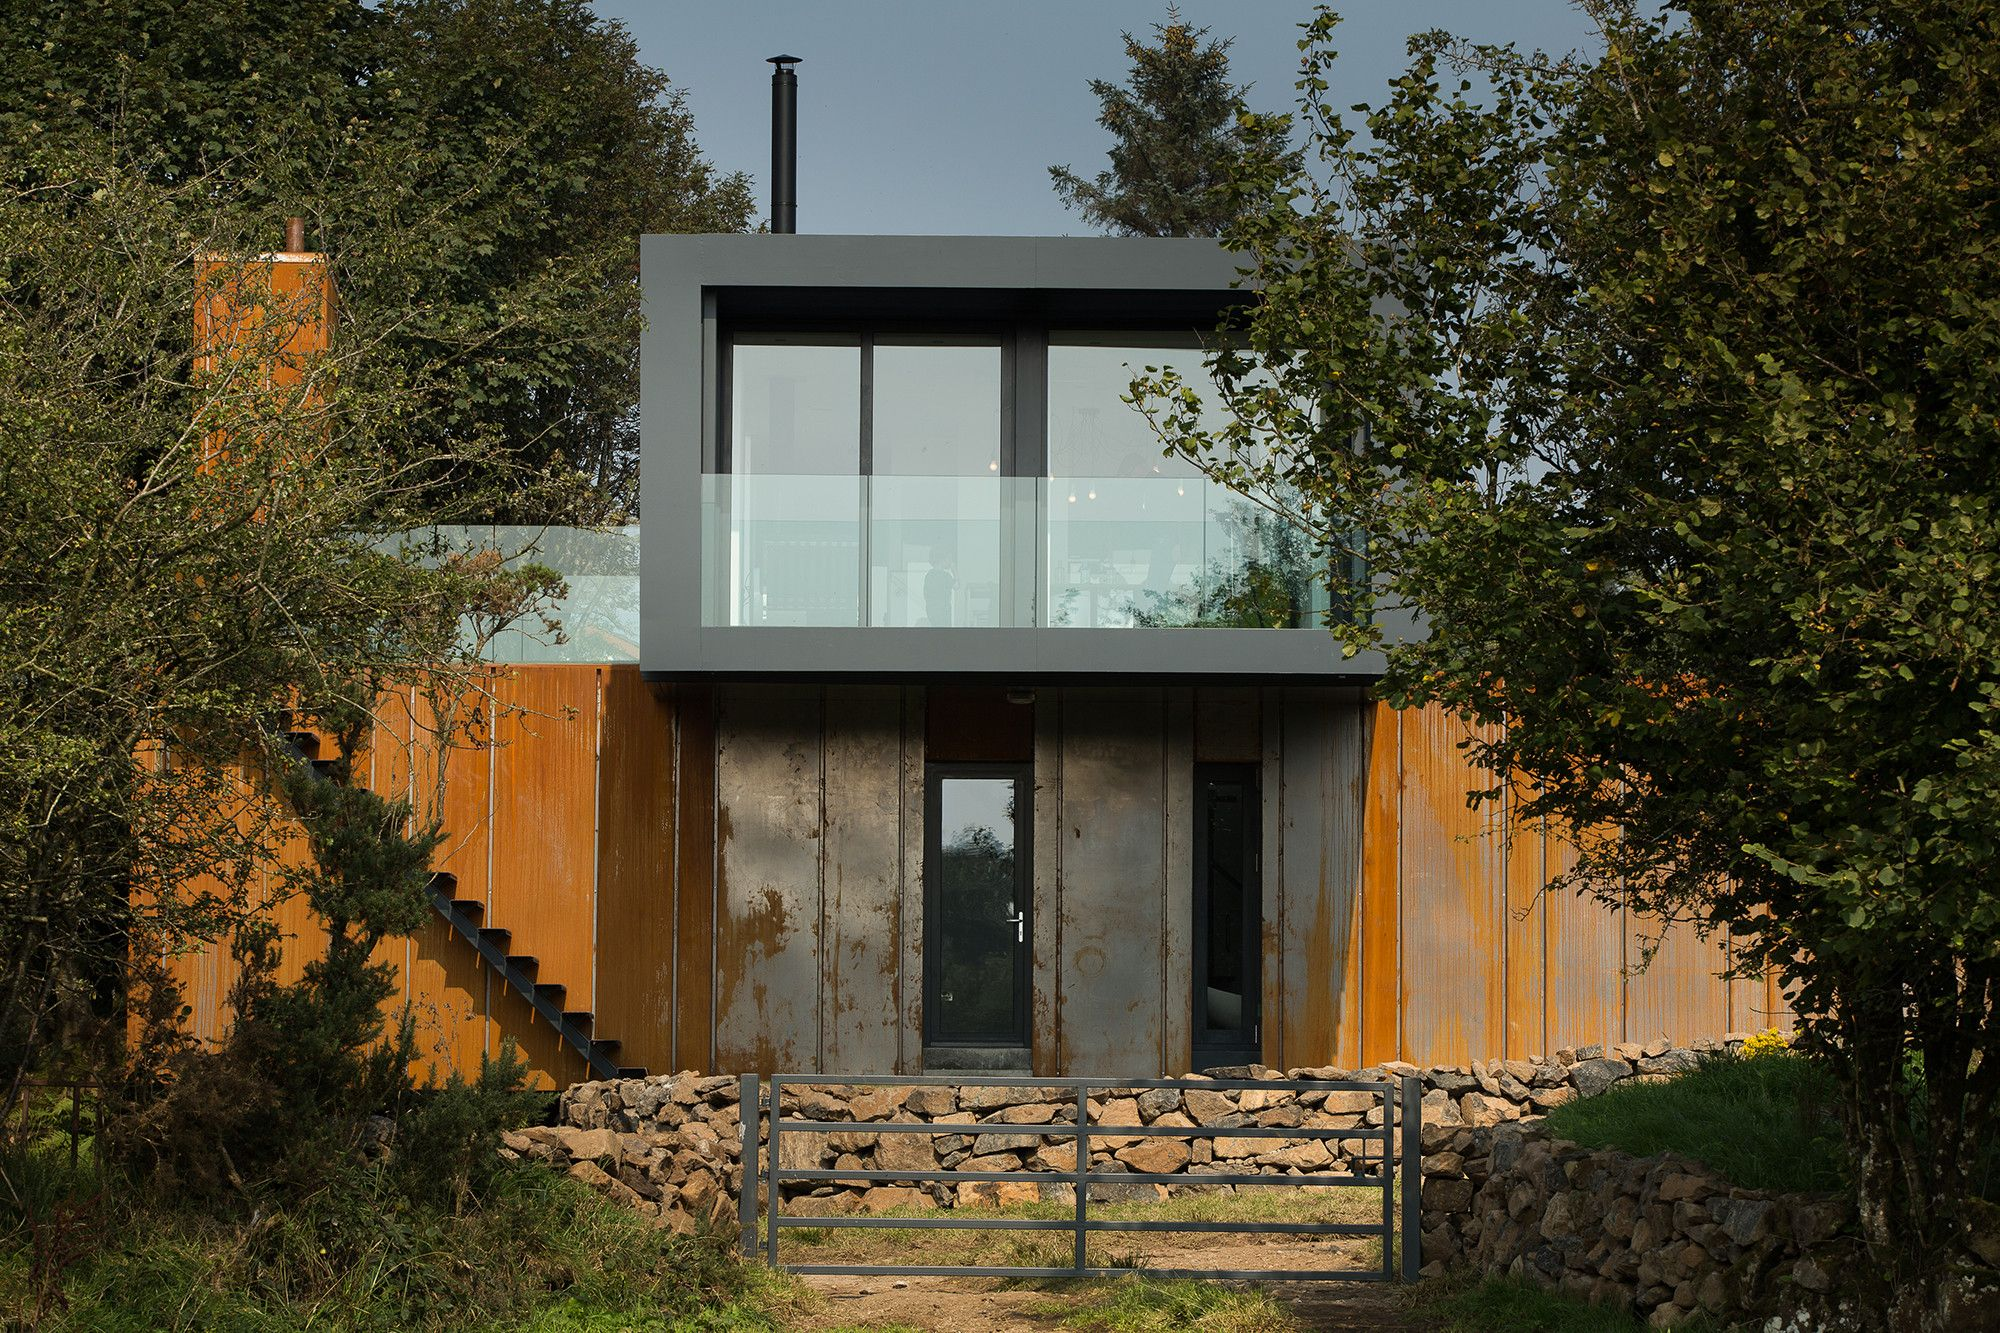 Best Kitchen Gallery: Grand Designs Container Home Grand Designs Container Home of Metal Container Homes  on rachelxblog.com